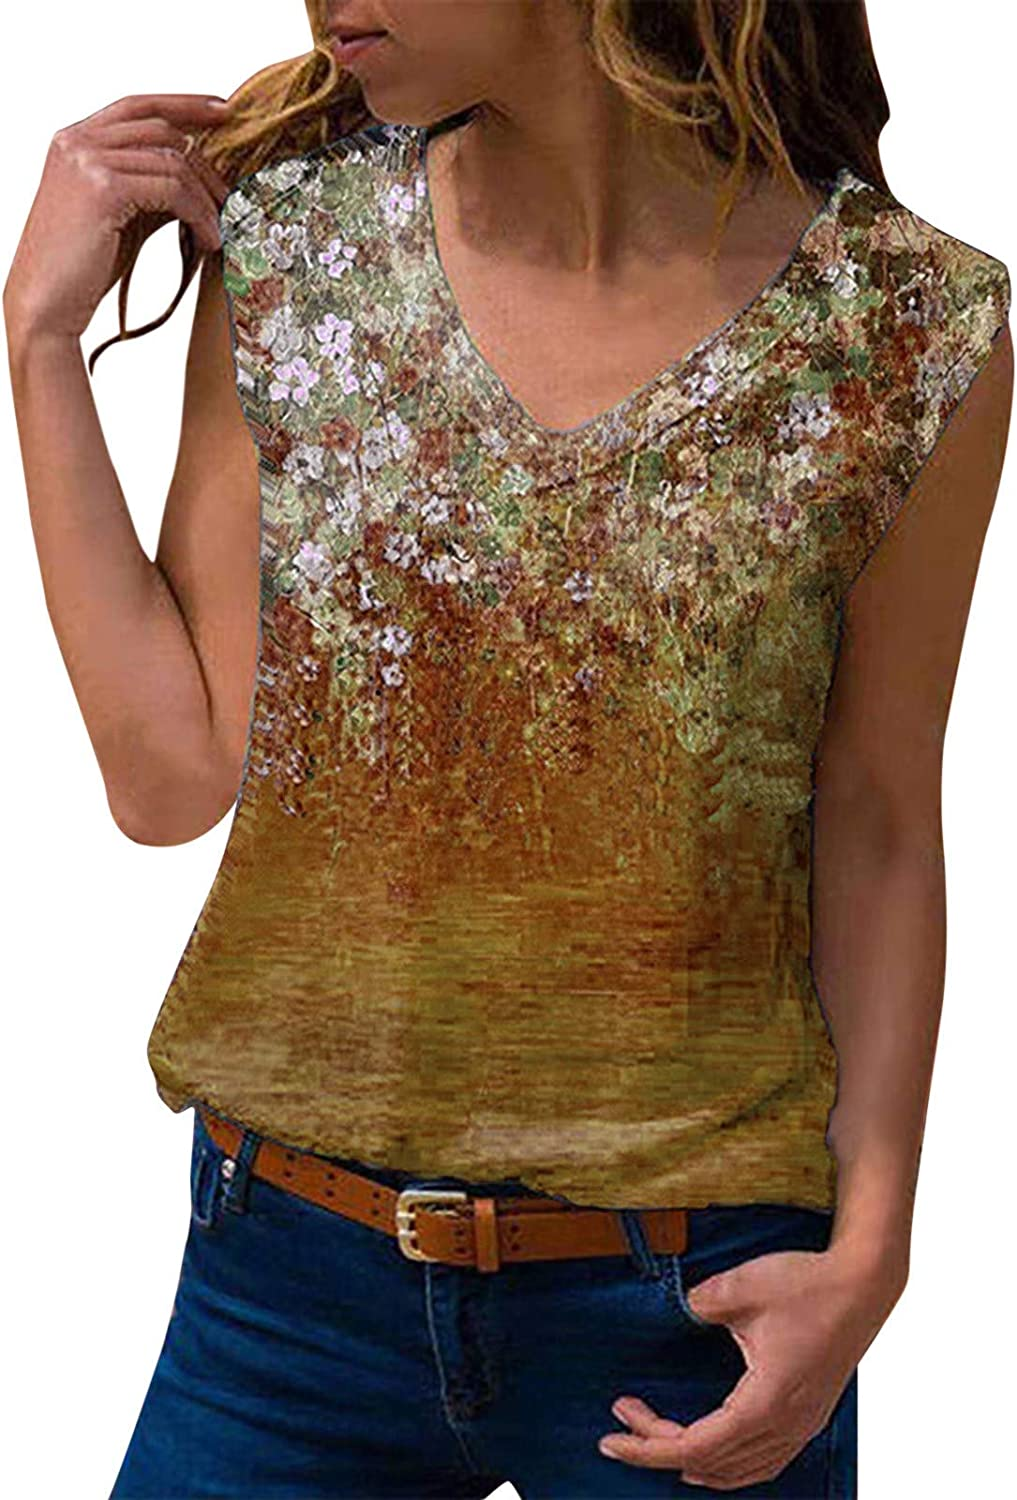 Euone_Clothes Blouse for Women Dressy Casual, Women Casual Fashion V-Neck Printed Sleeveless Top Blouse Tank Camisole